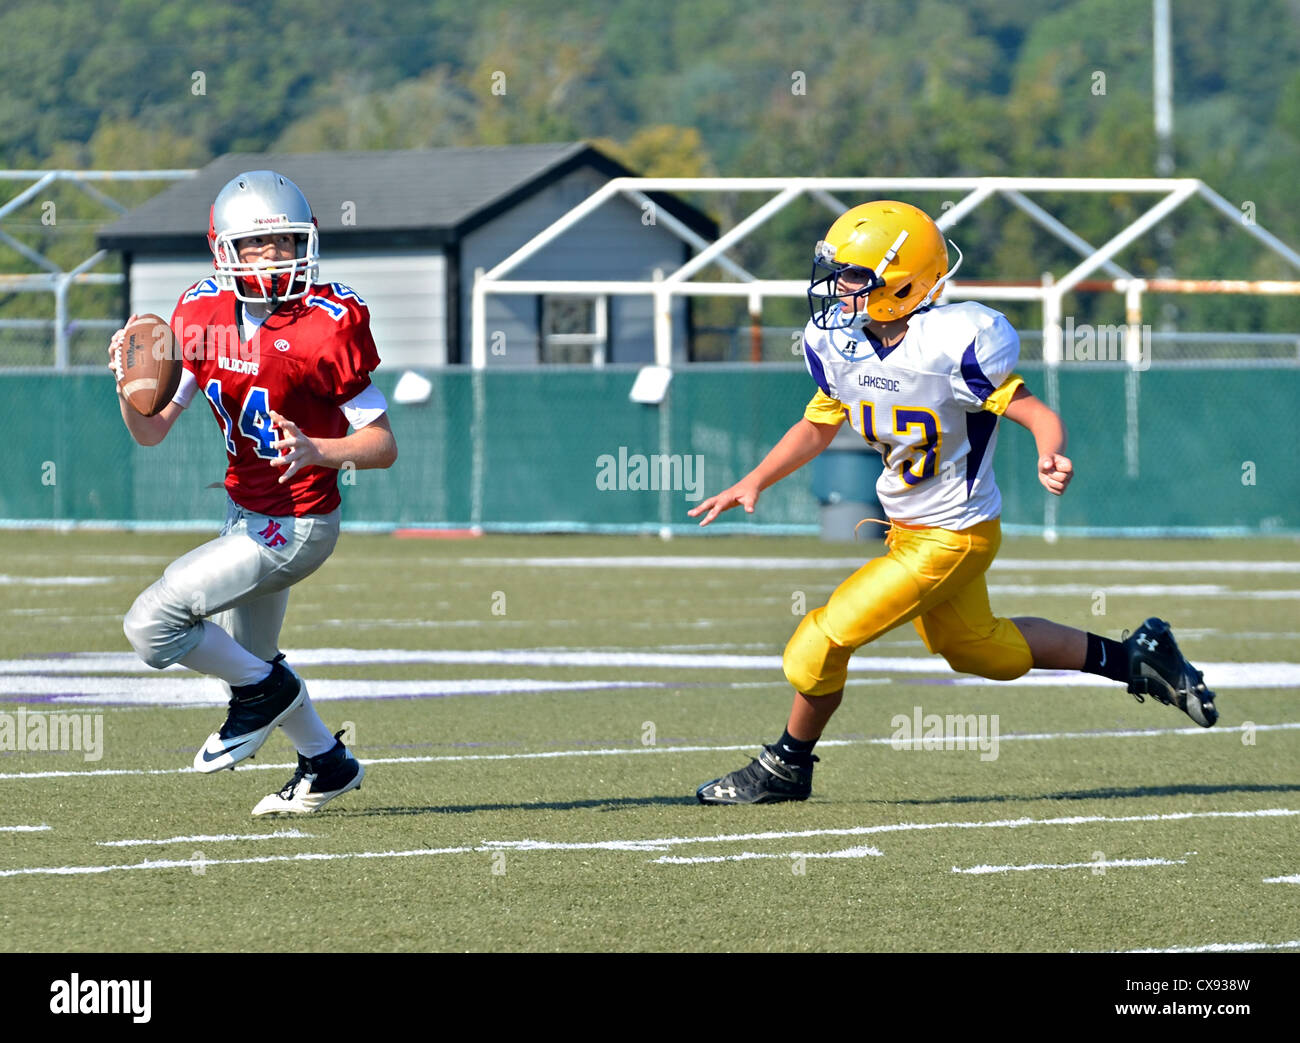 A young quarterback ready to make a pass with a player rushing to tackle. - Stock Image